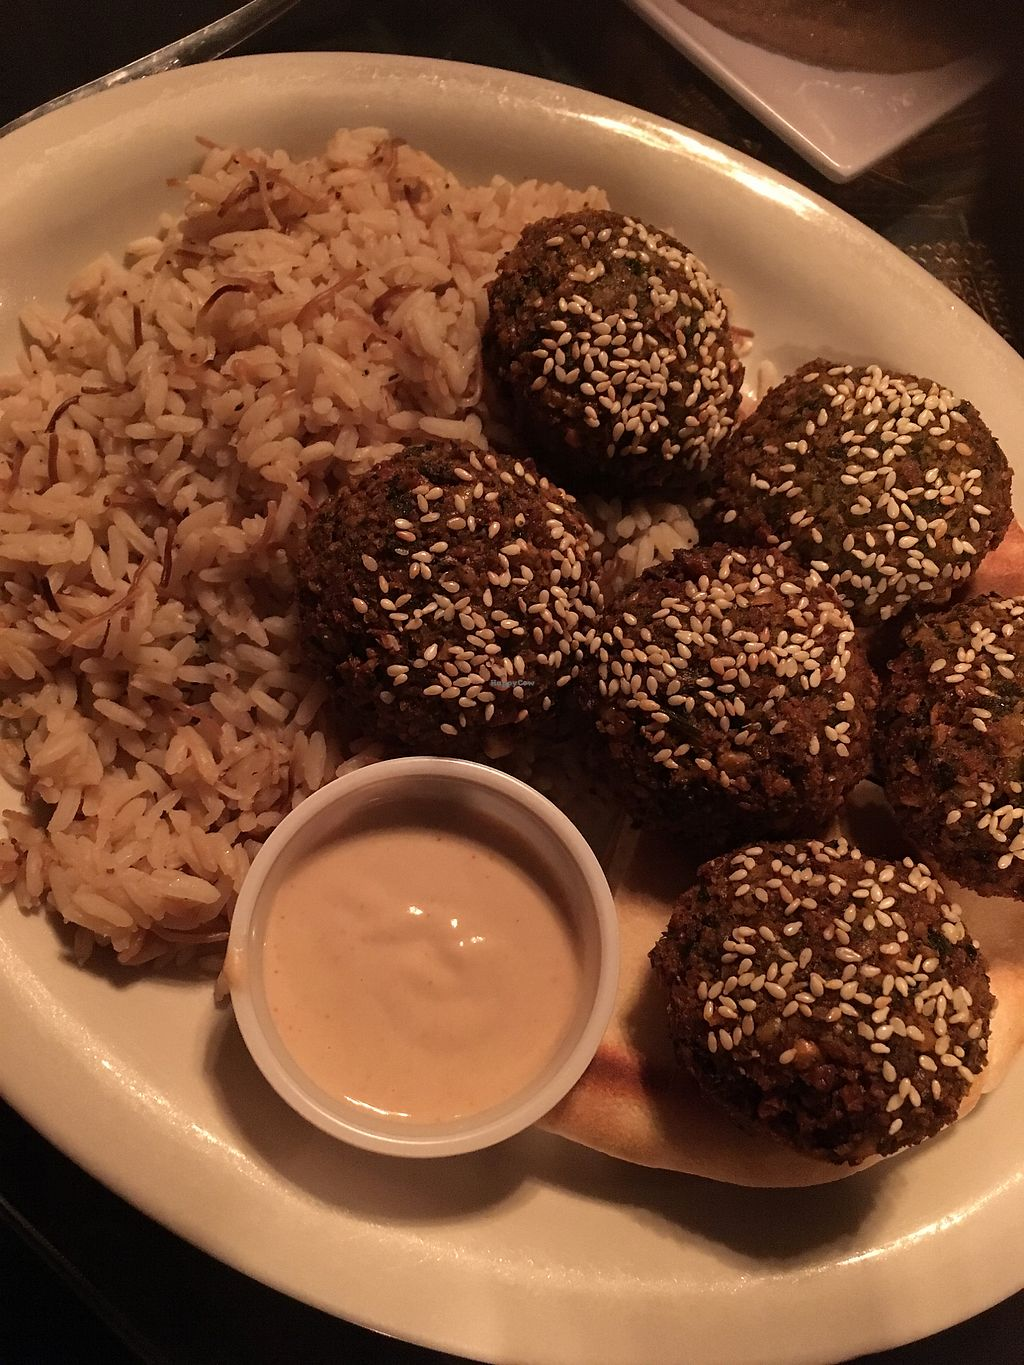 """Photo of King Tut  by <a href=""""/members/profile/SharonLaneHenderson"""">SharonLaneHenderson</a> <br/>Falafel place with rice.  <br/> August 13, 2017  - <a href='/contact/abuse/image/82097/292296'>Report</a>"""